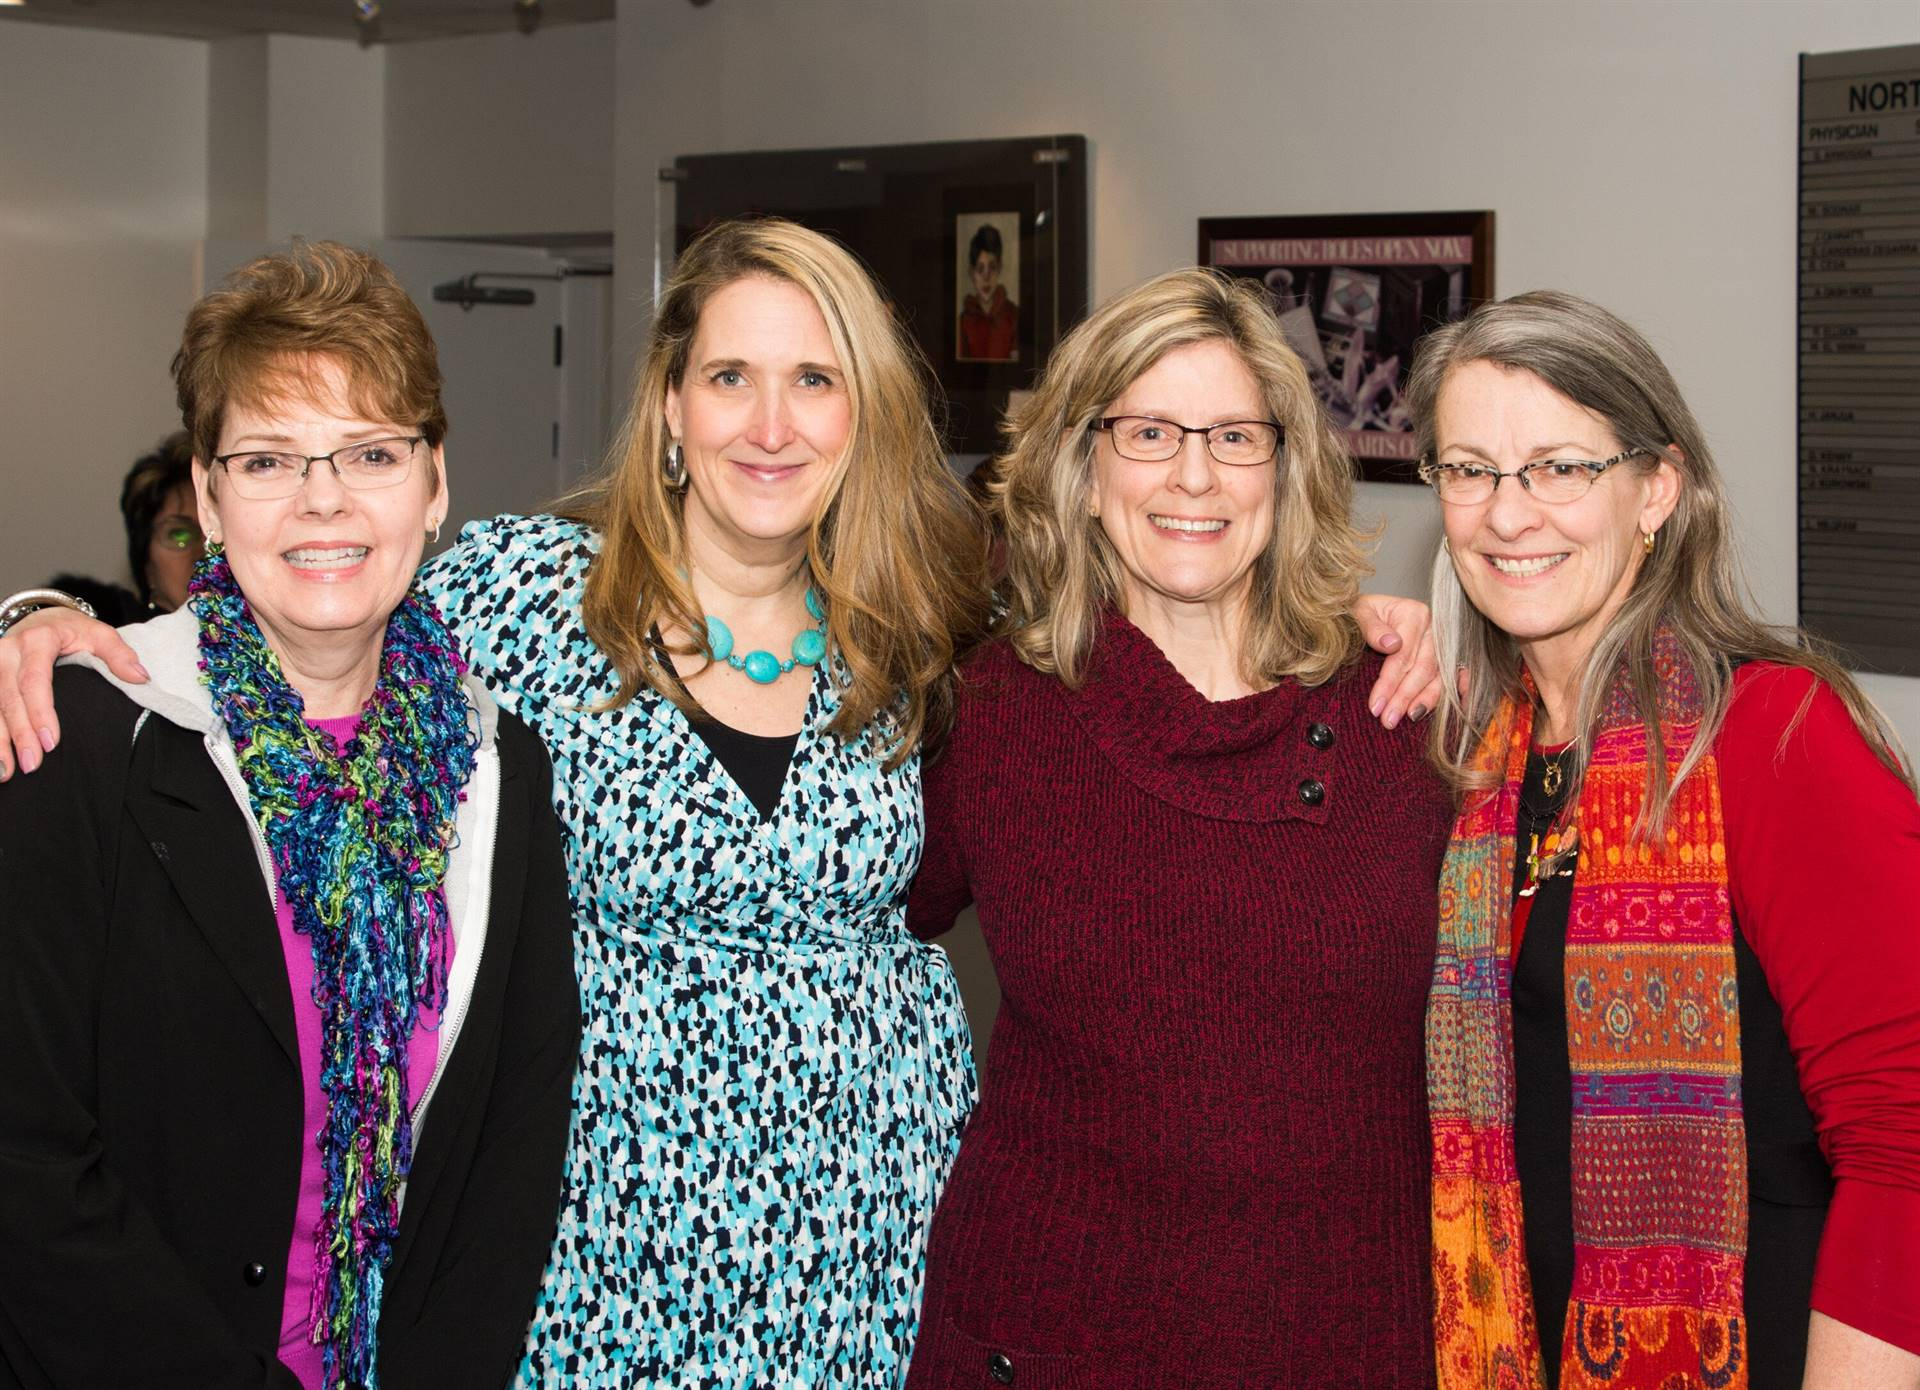 Participating Art Teachers (L to R): Pat Wise, Bonnie Kubilus, Julie Krueger, and Bobbie Foy